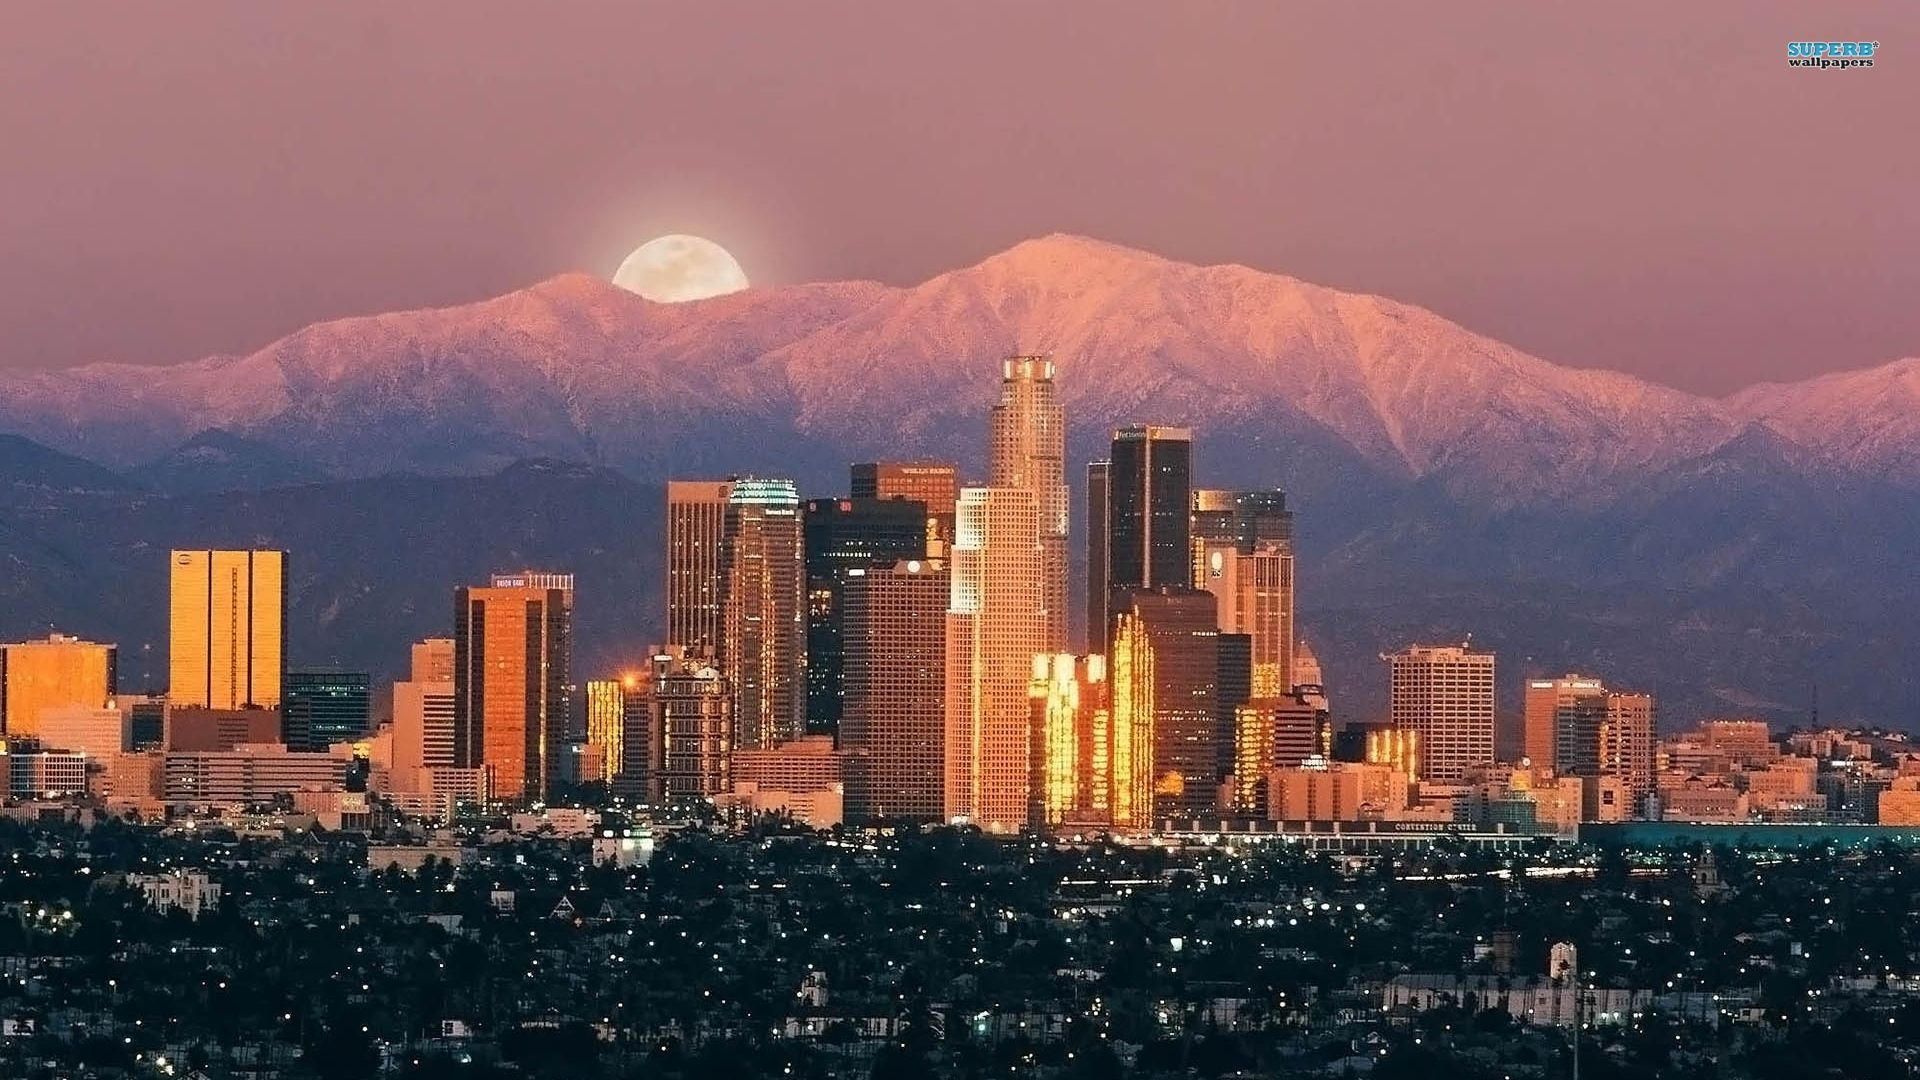 Los Angeles Wallpaper, 100% Quality Los Angeles Hd - Los Angeles 4k , HD Wallpaper & Backgrounds